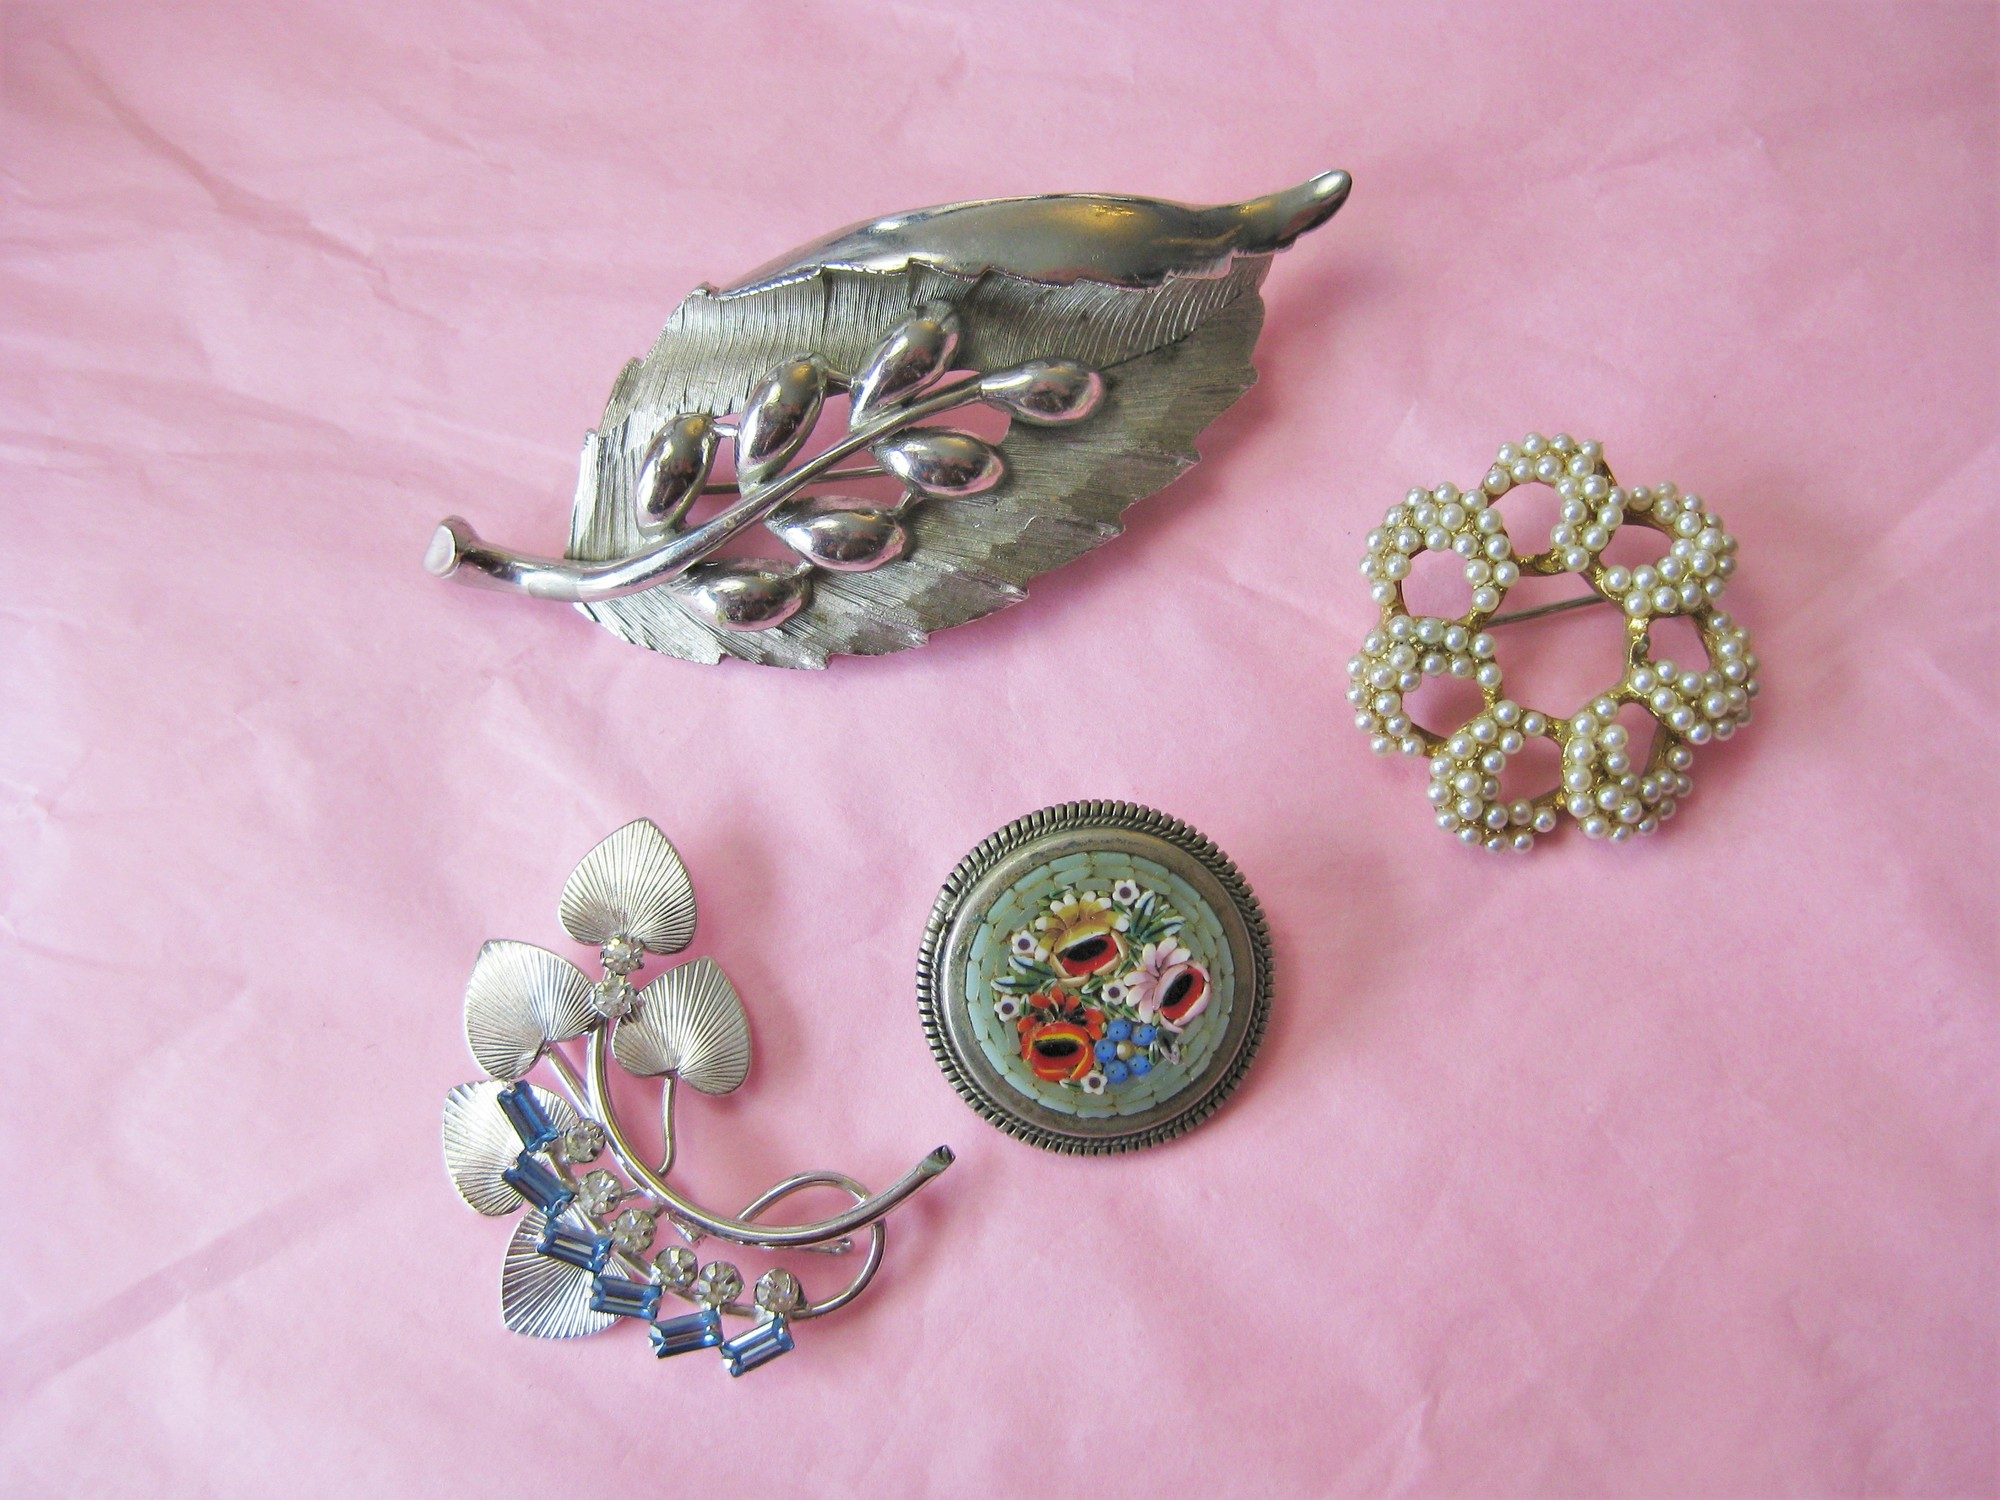 This is a pretty collection of vintage costume brooches.<br /> <br /> The collection consists of:<br /> a. Round gold tone pin with tiny seed pearls, probably faux 1.25in<br /> b. Round micromosaic floral on silver, probably sterlign 1in<br /> c. Modernist silver leaf brooch with gorgous square cut blue rhinestones and round clear ones 1 1/2in<br /> d. Large statement silver tone leaf 4.25in<br /> <br /> Thanks for looking!<br /> #18056